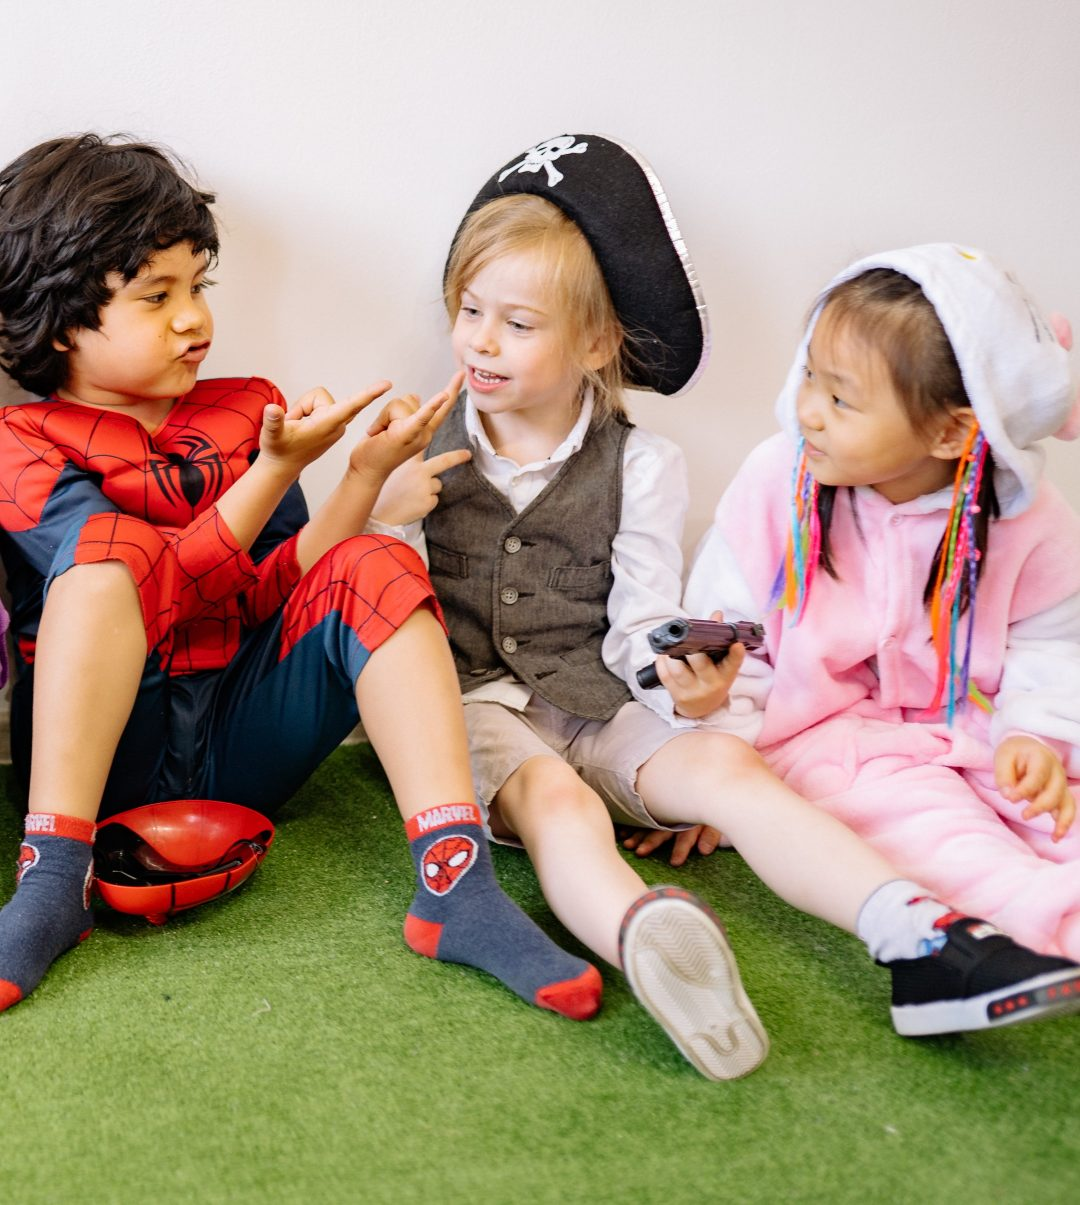 A fancy dress party with lots of fun and games